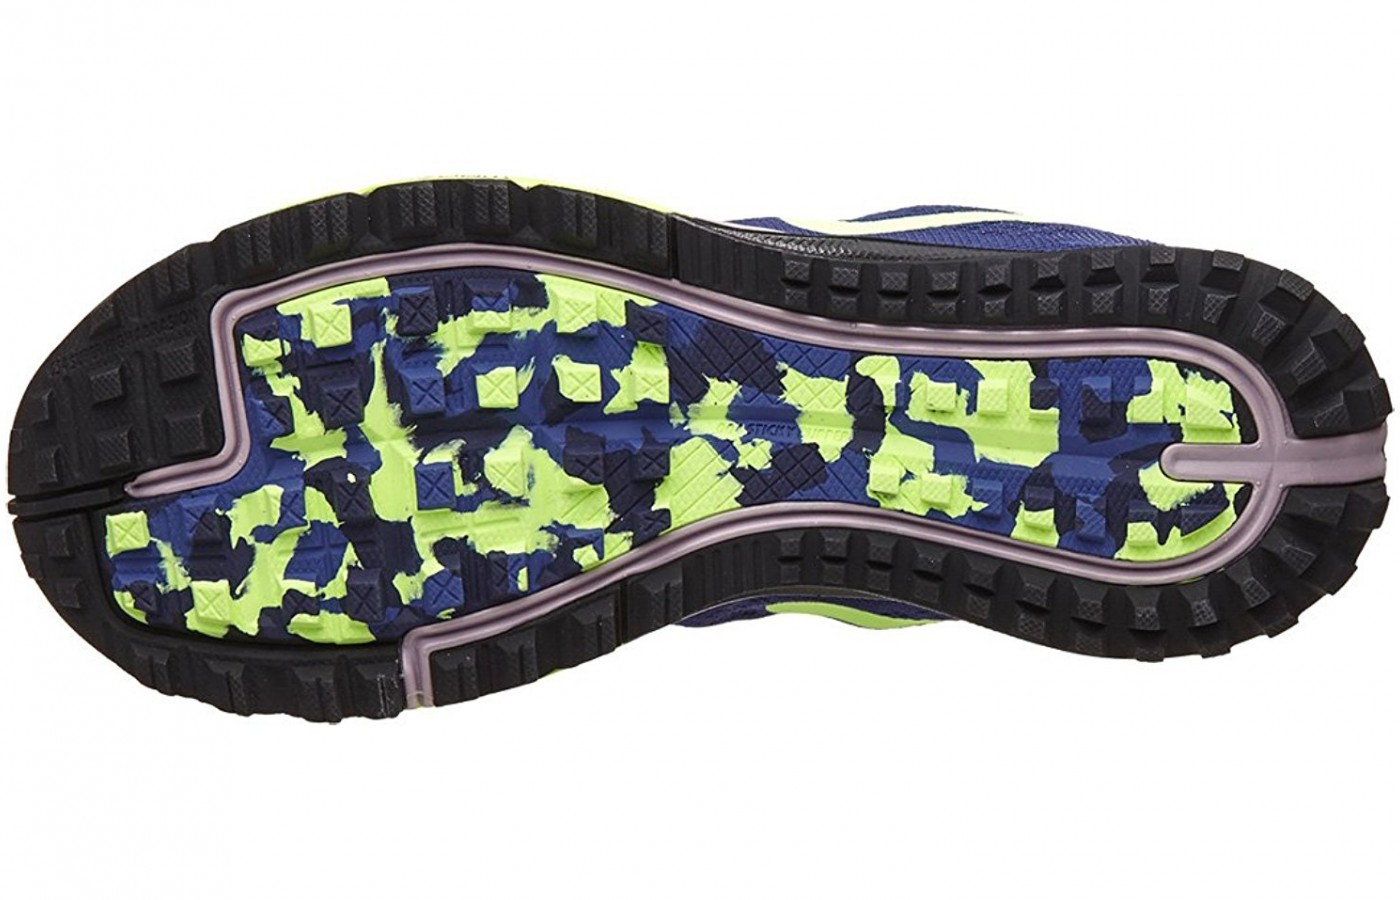 A bottom view of the Nike Air Zoom Terra Kiger 3 Running Shoe